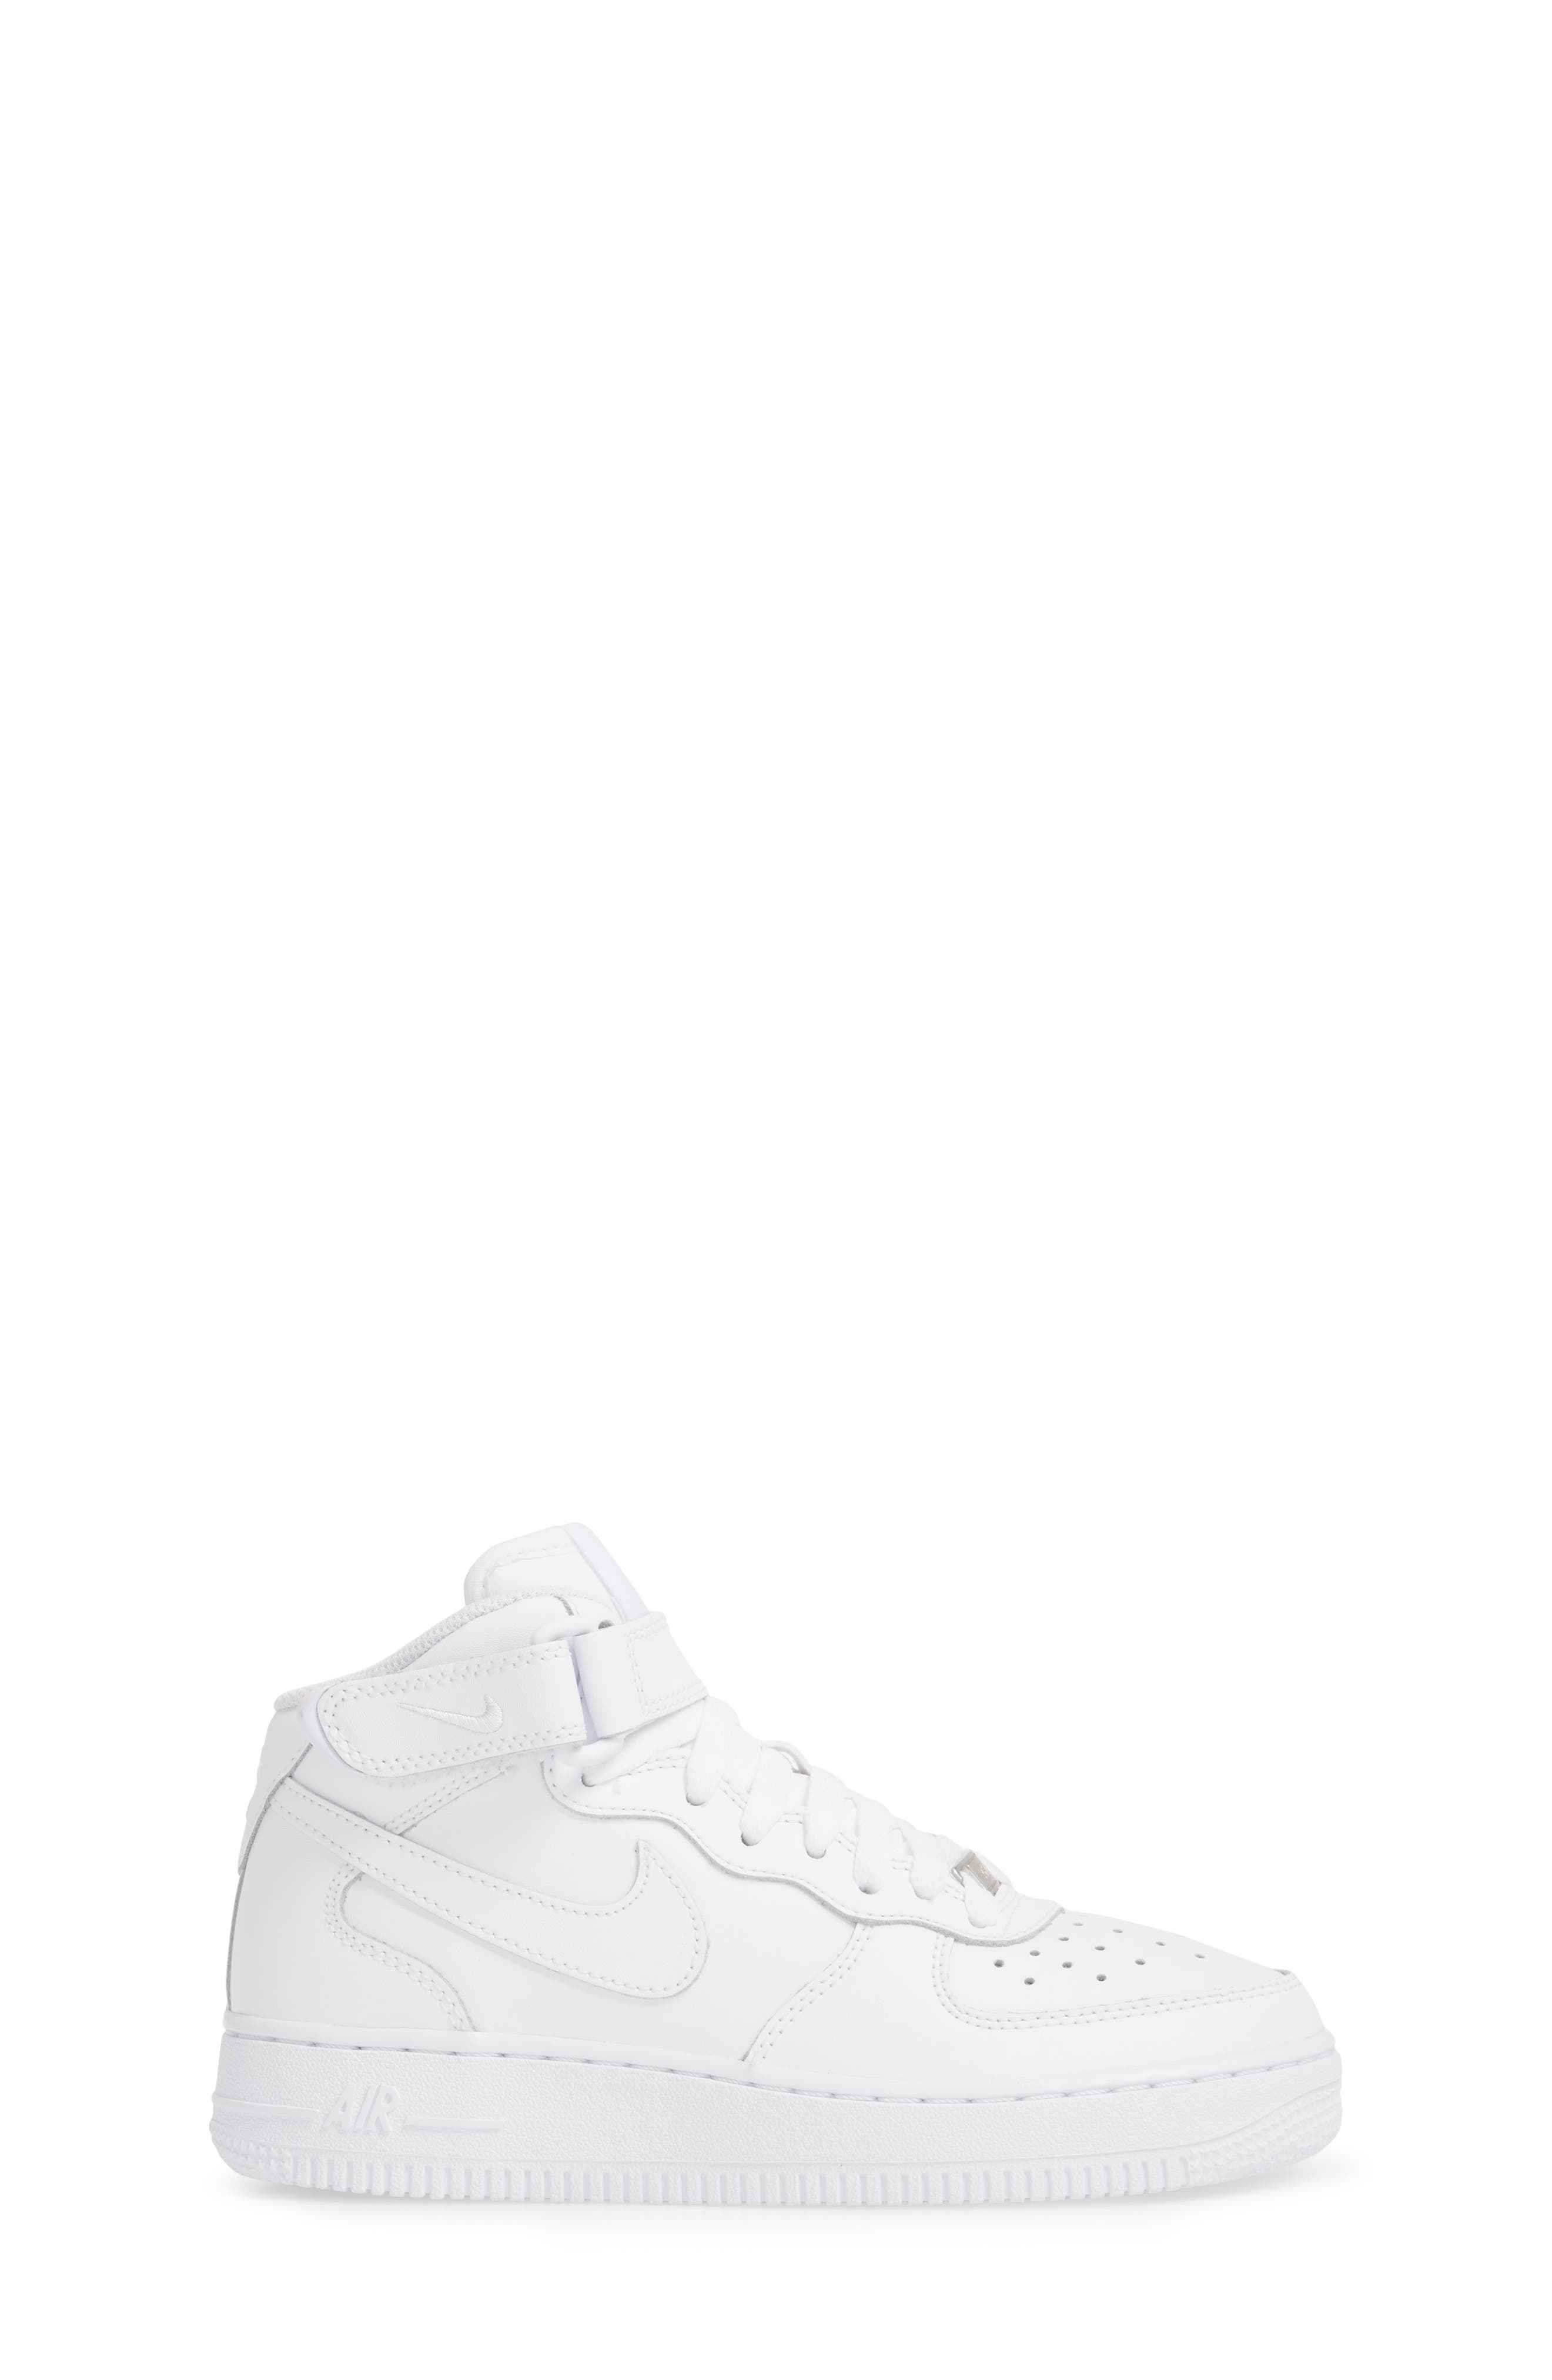 Air Force 1 Mid Top Sneaker,                             Alternate thumbnail 3, color,                             White